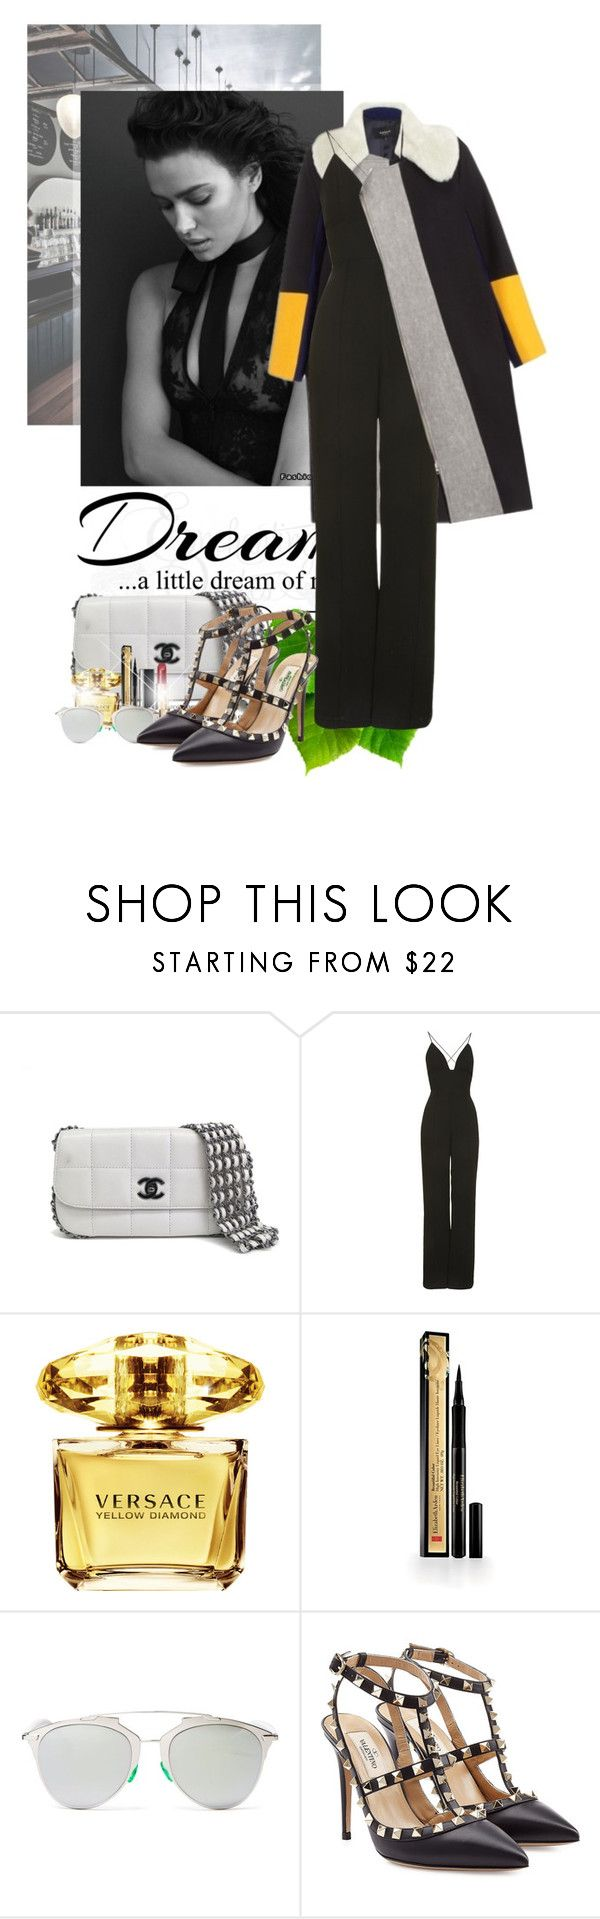 """""""No more secrets"""" by ionara ❤ liked on Polyvore featuring Love Quotes Scarves, Chanel, Rare London, Versace, Elizabeth Arden, Christian Dior and Valentino"""